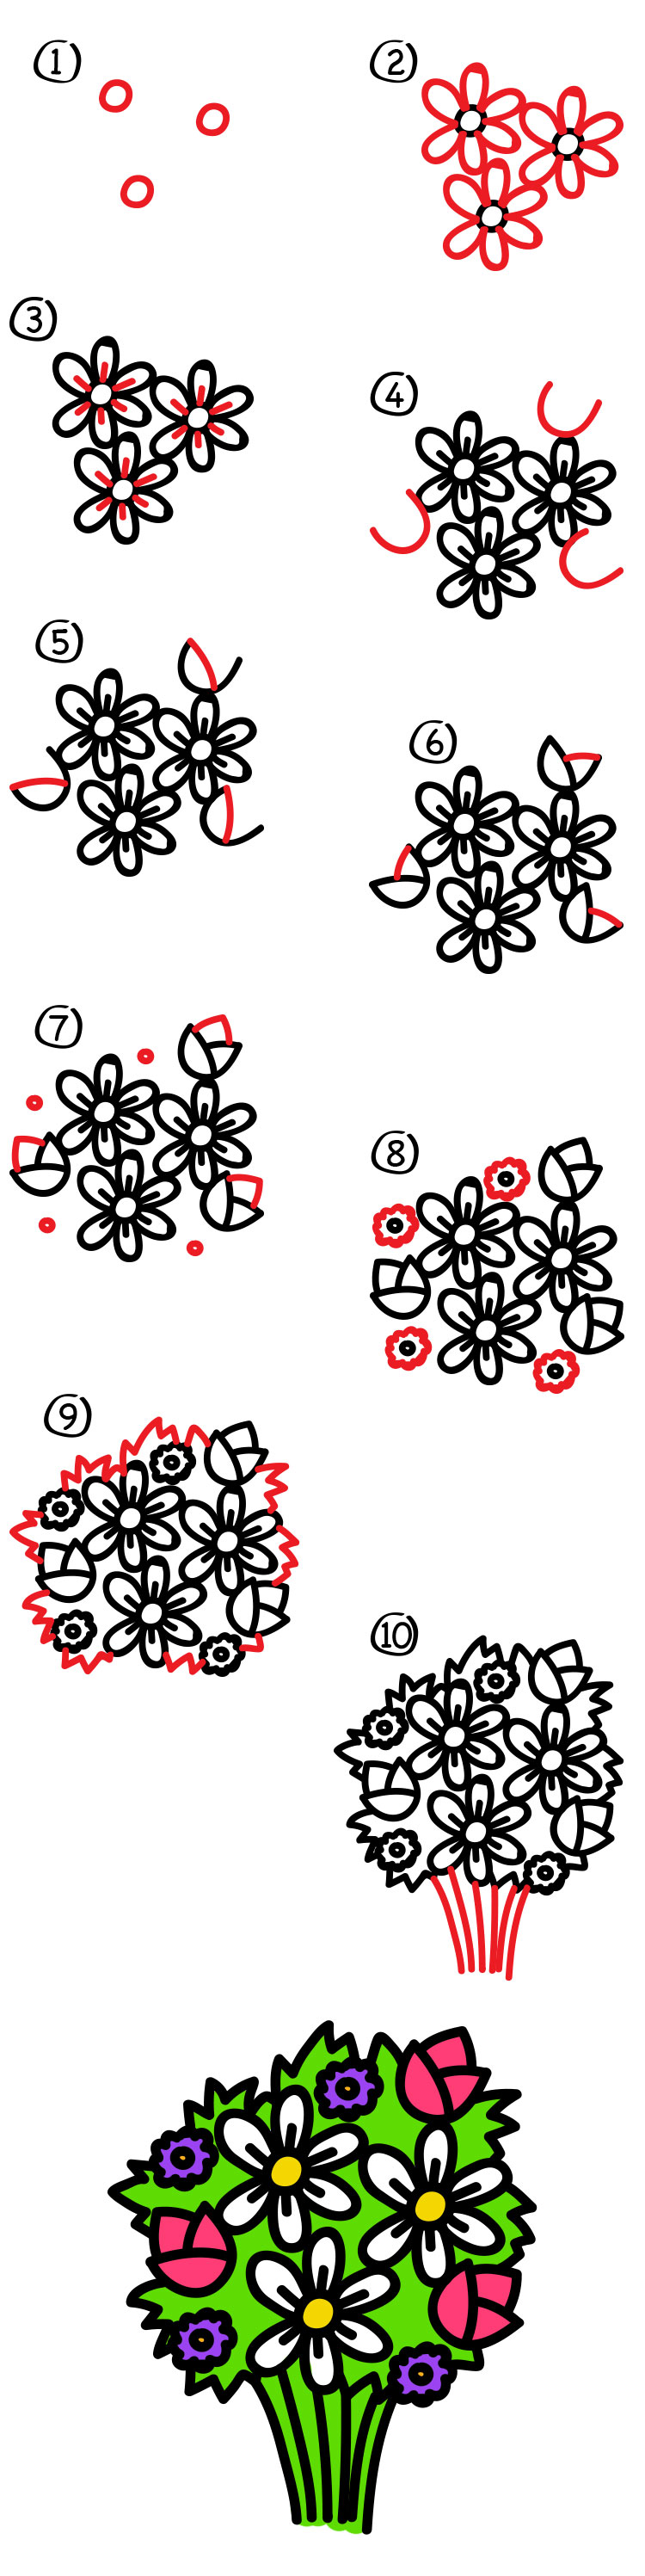 Learn How To Draw How To Draw A Flower Easy For Kids